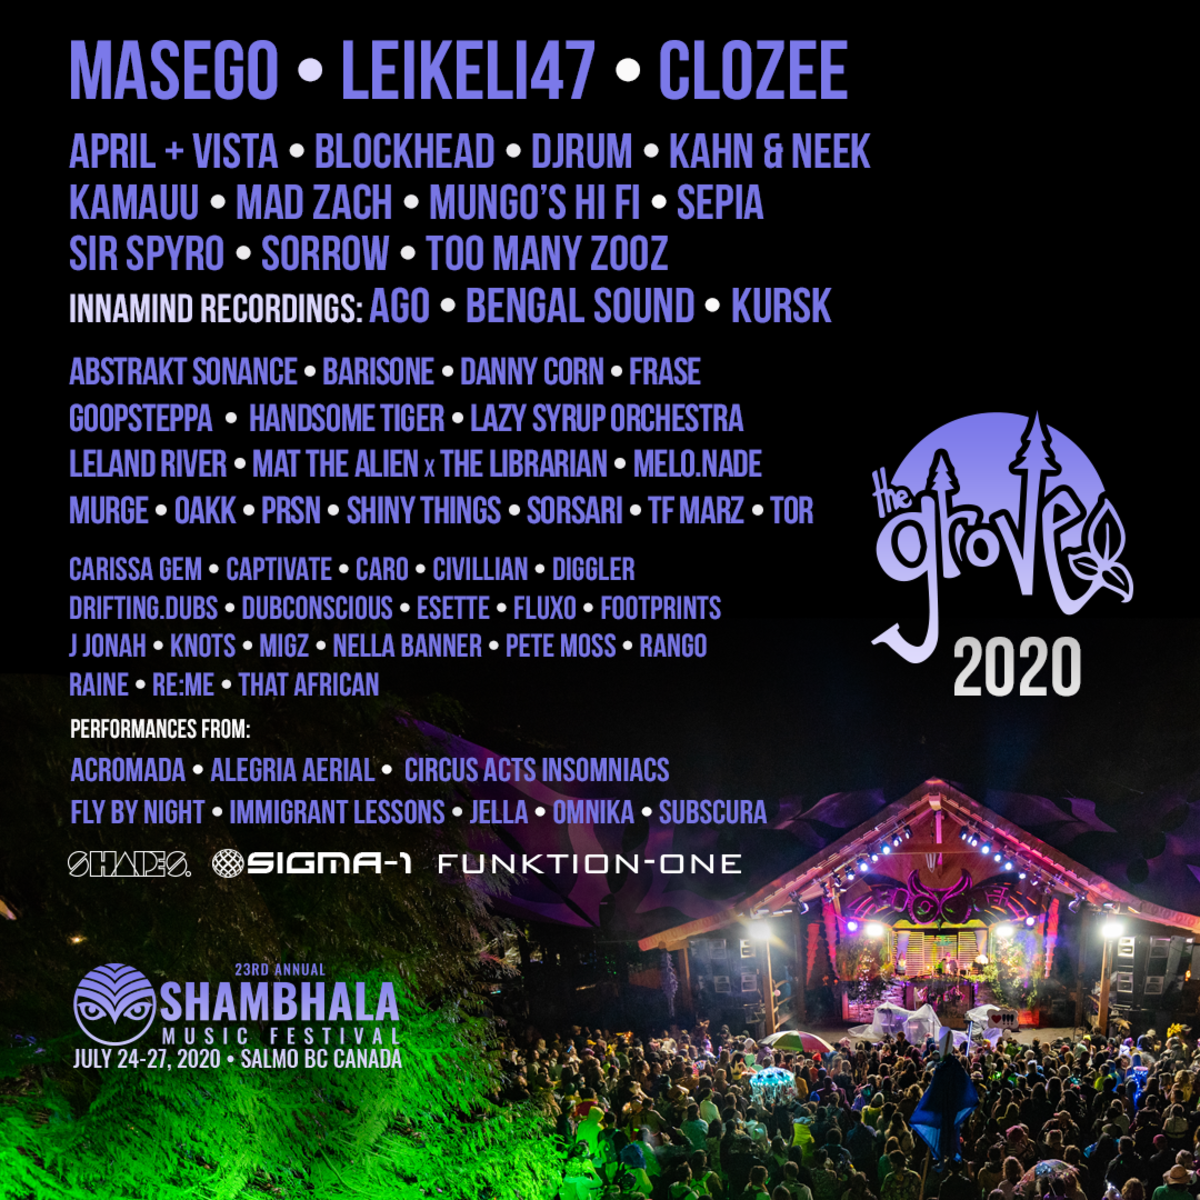 Shambhala Music Festival The Grove Stage Line Up 2020